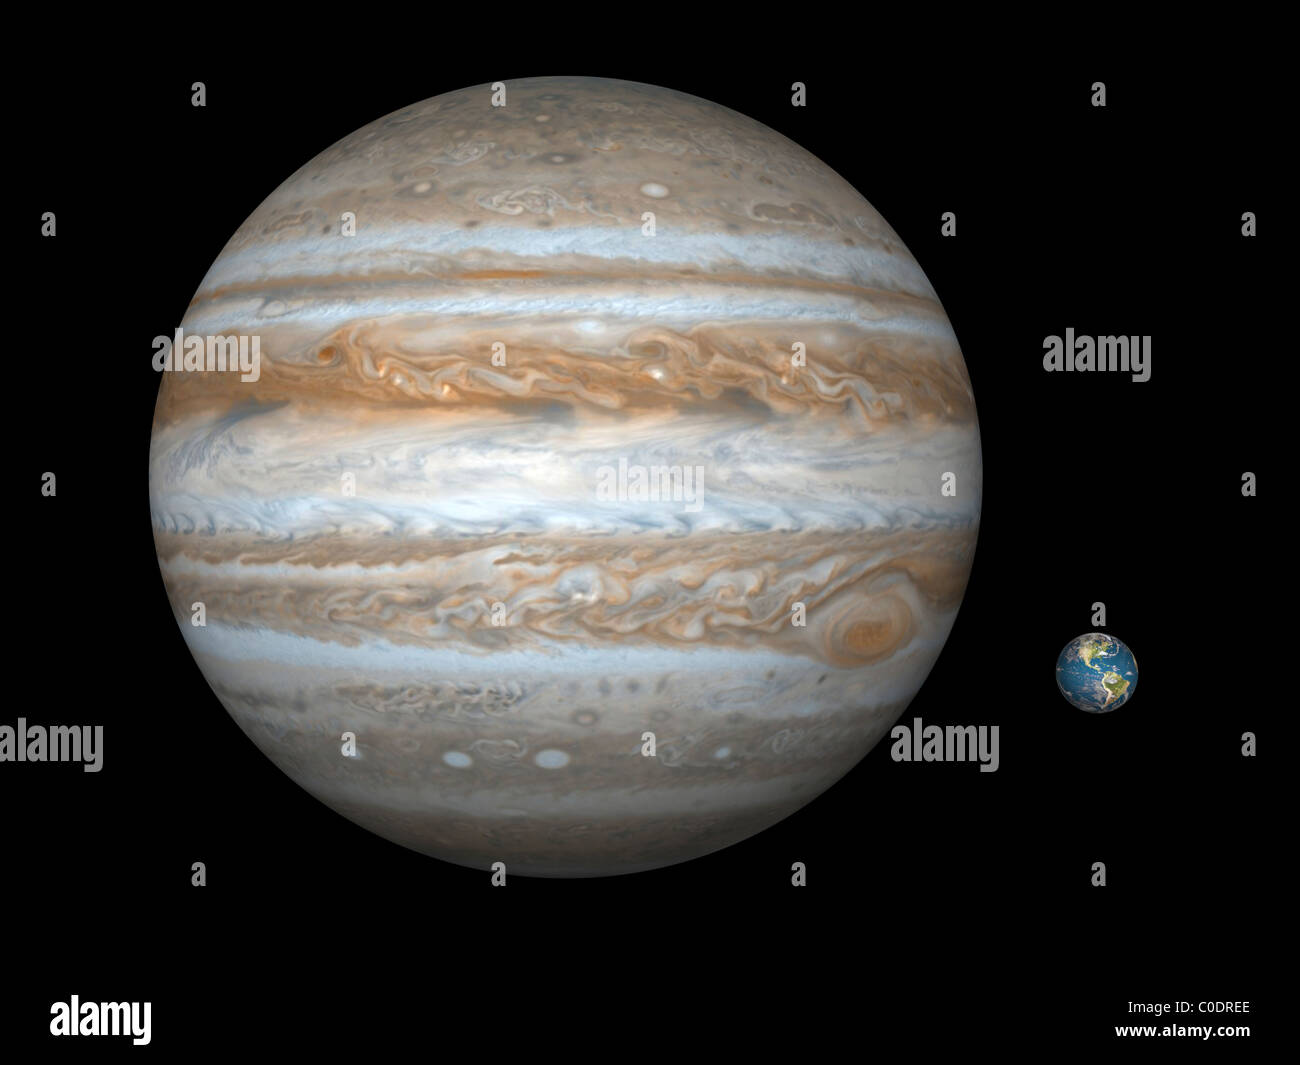 Artist's concept comparing the size of the gas giant Jupiter with that of the Earth. - Stock Image